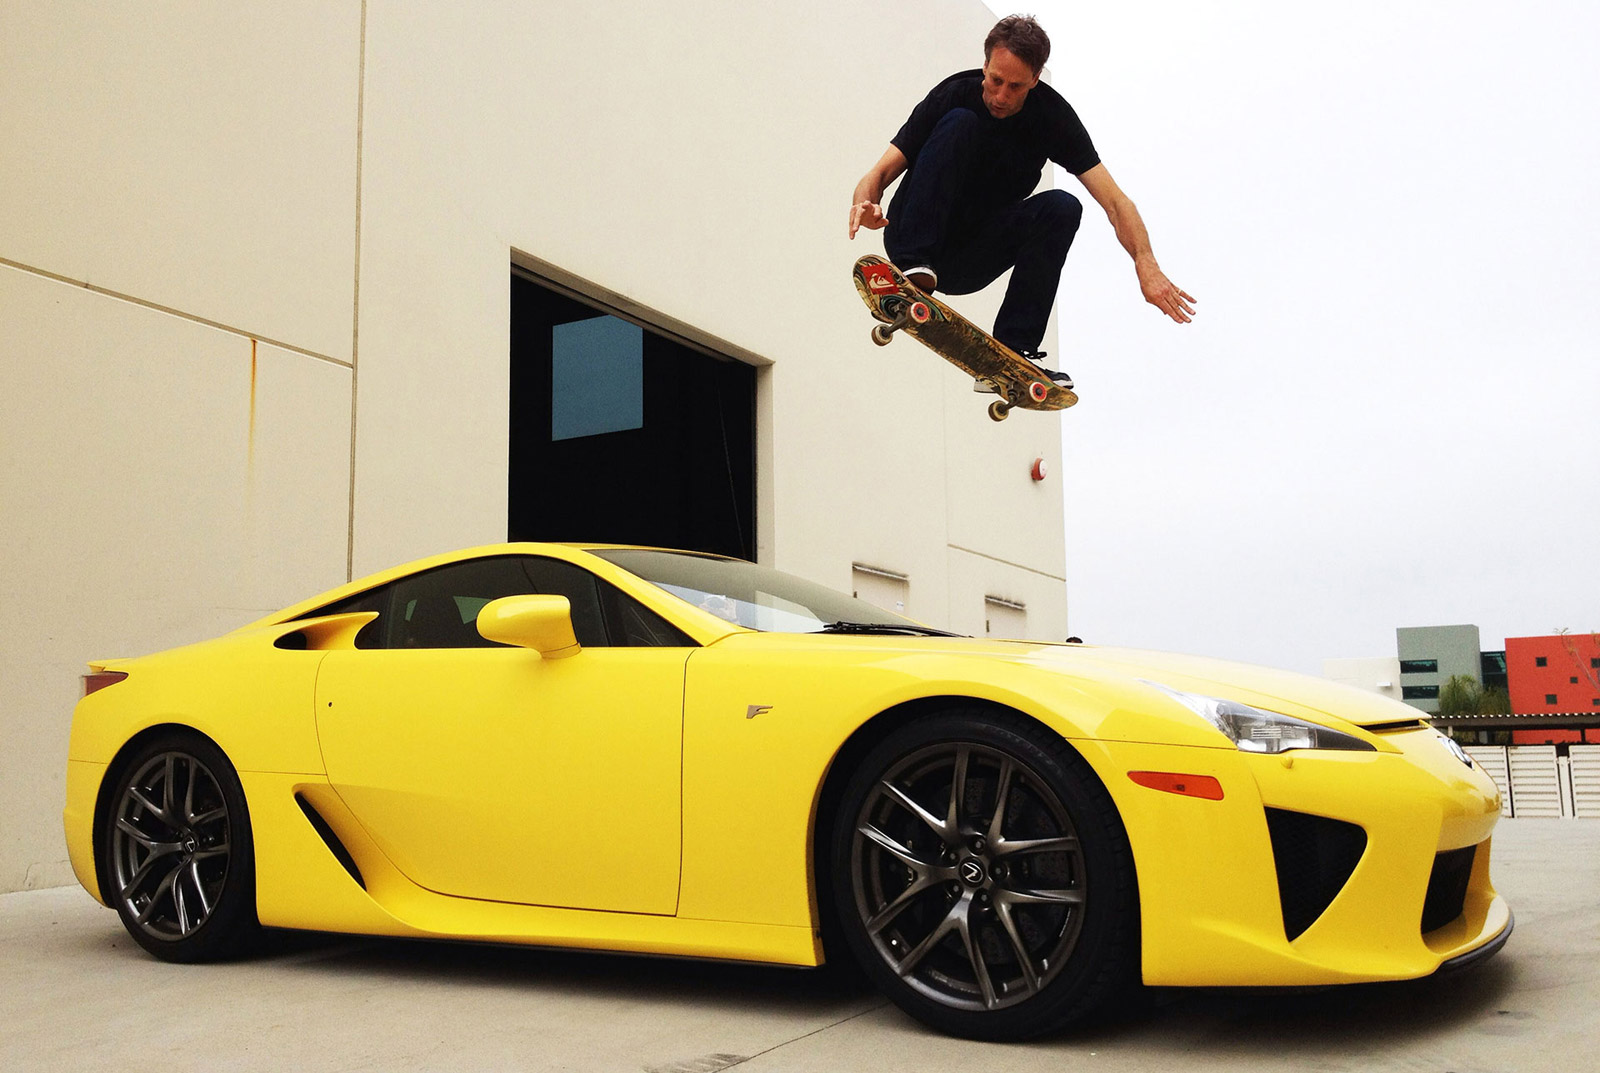 Toyota Van 2018 >> Lexus Fan Tony Hawk Uses Skateboard To Jump Over LFA: Video